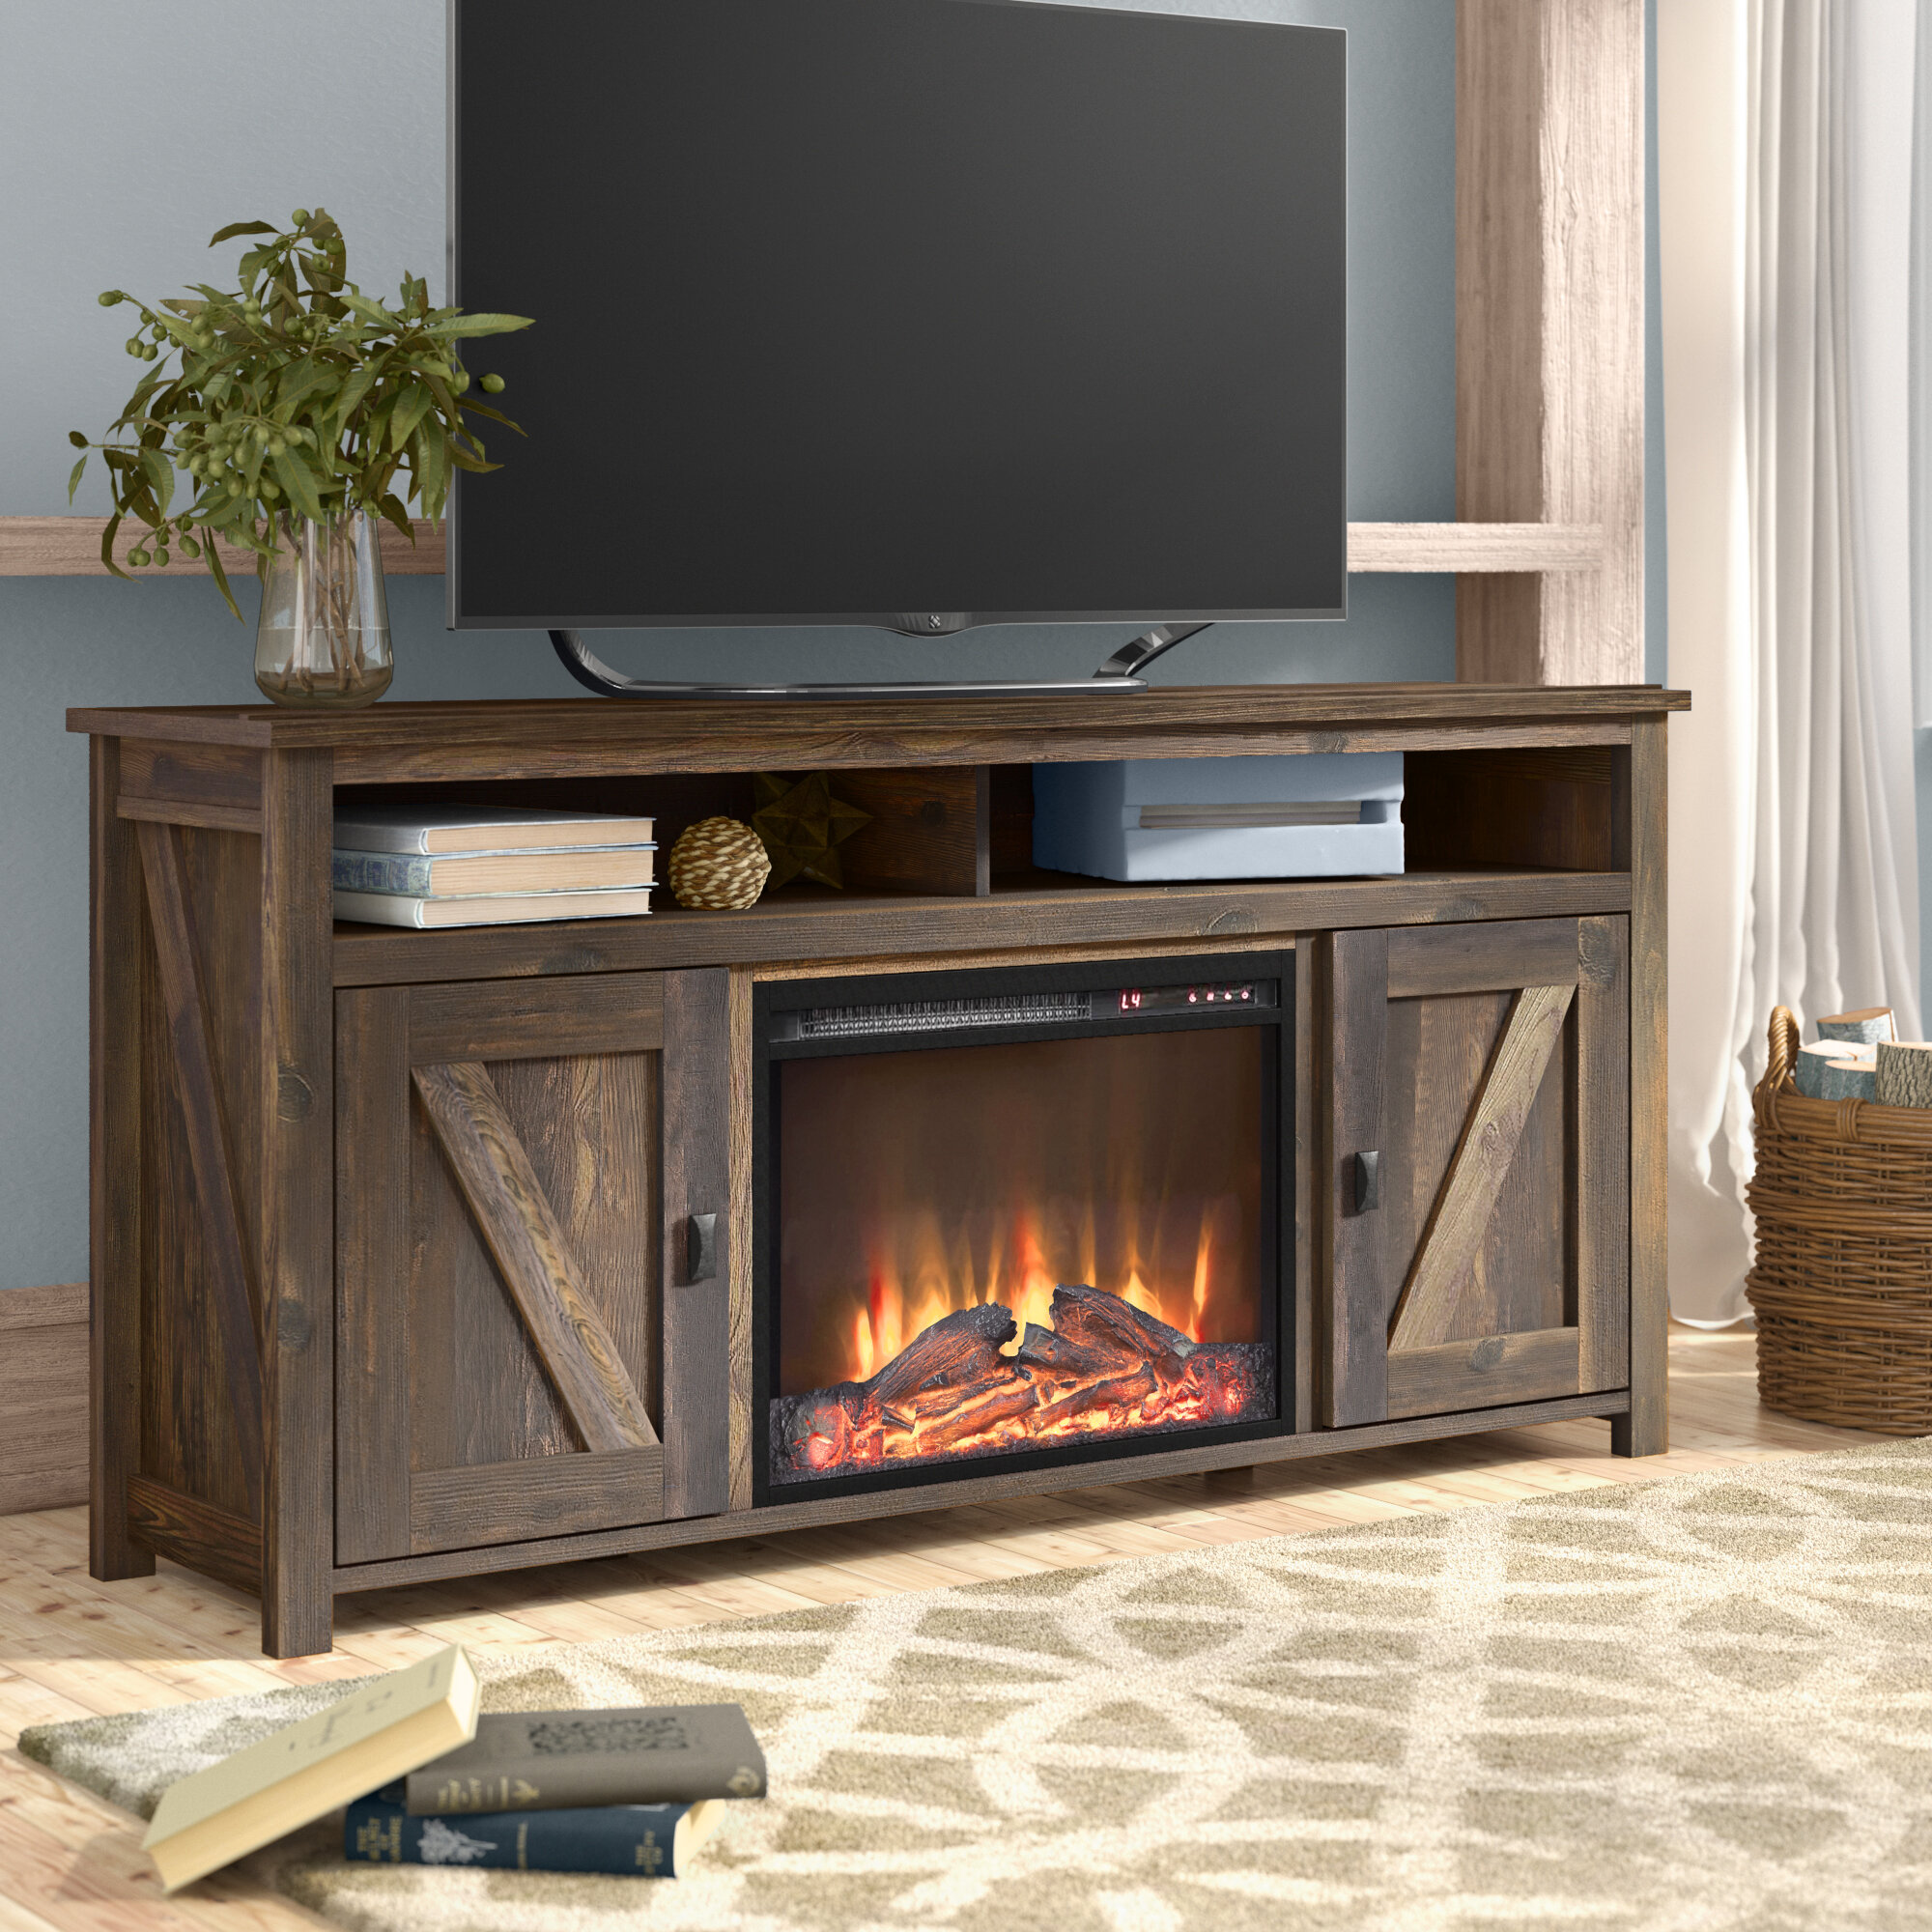 Mistana Whittier Tv Stand For Tvs Up To 60 With Fireplace Reviews